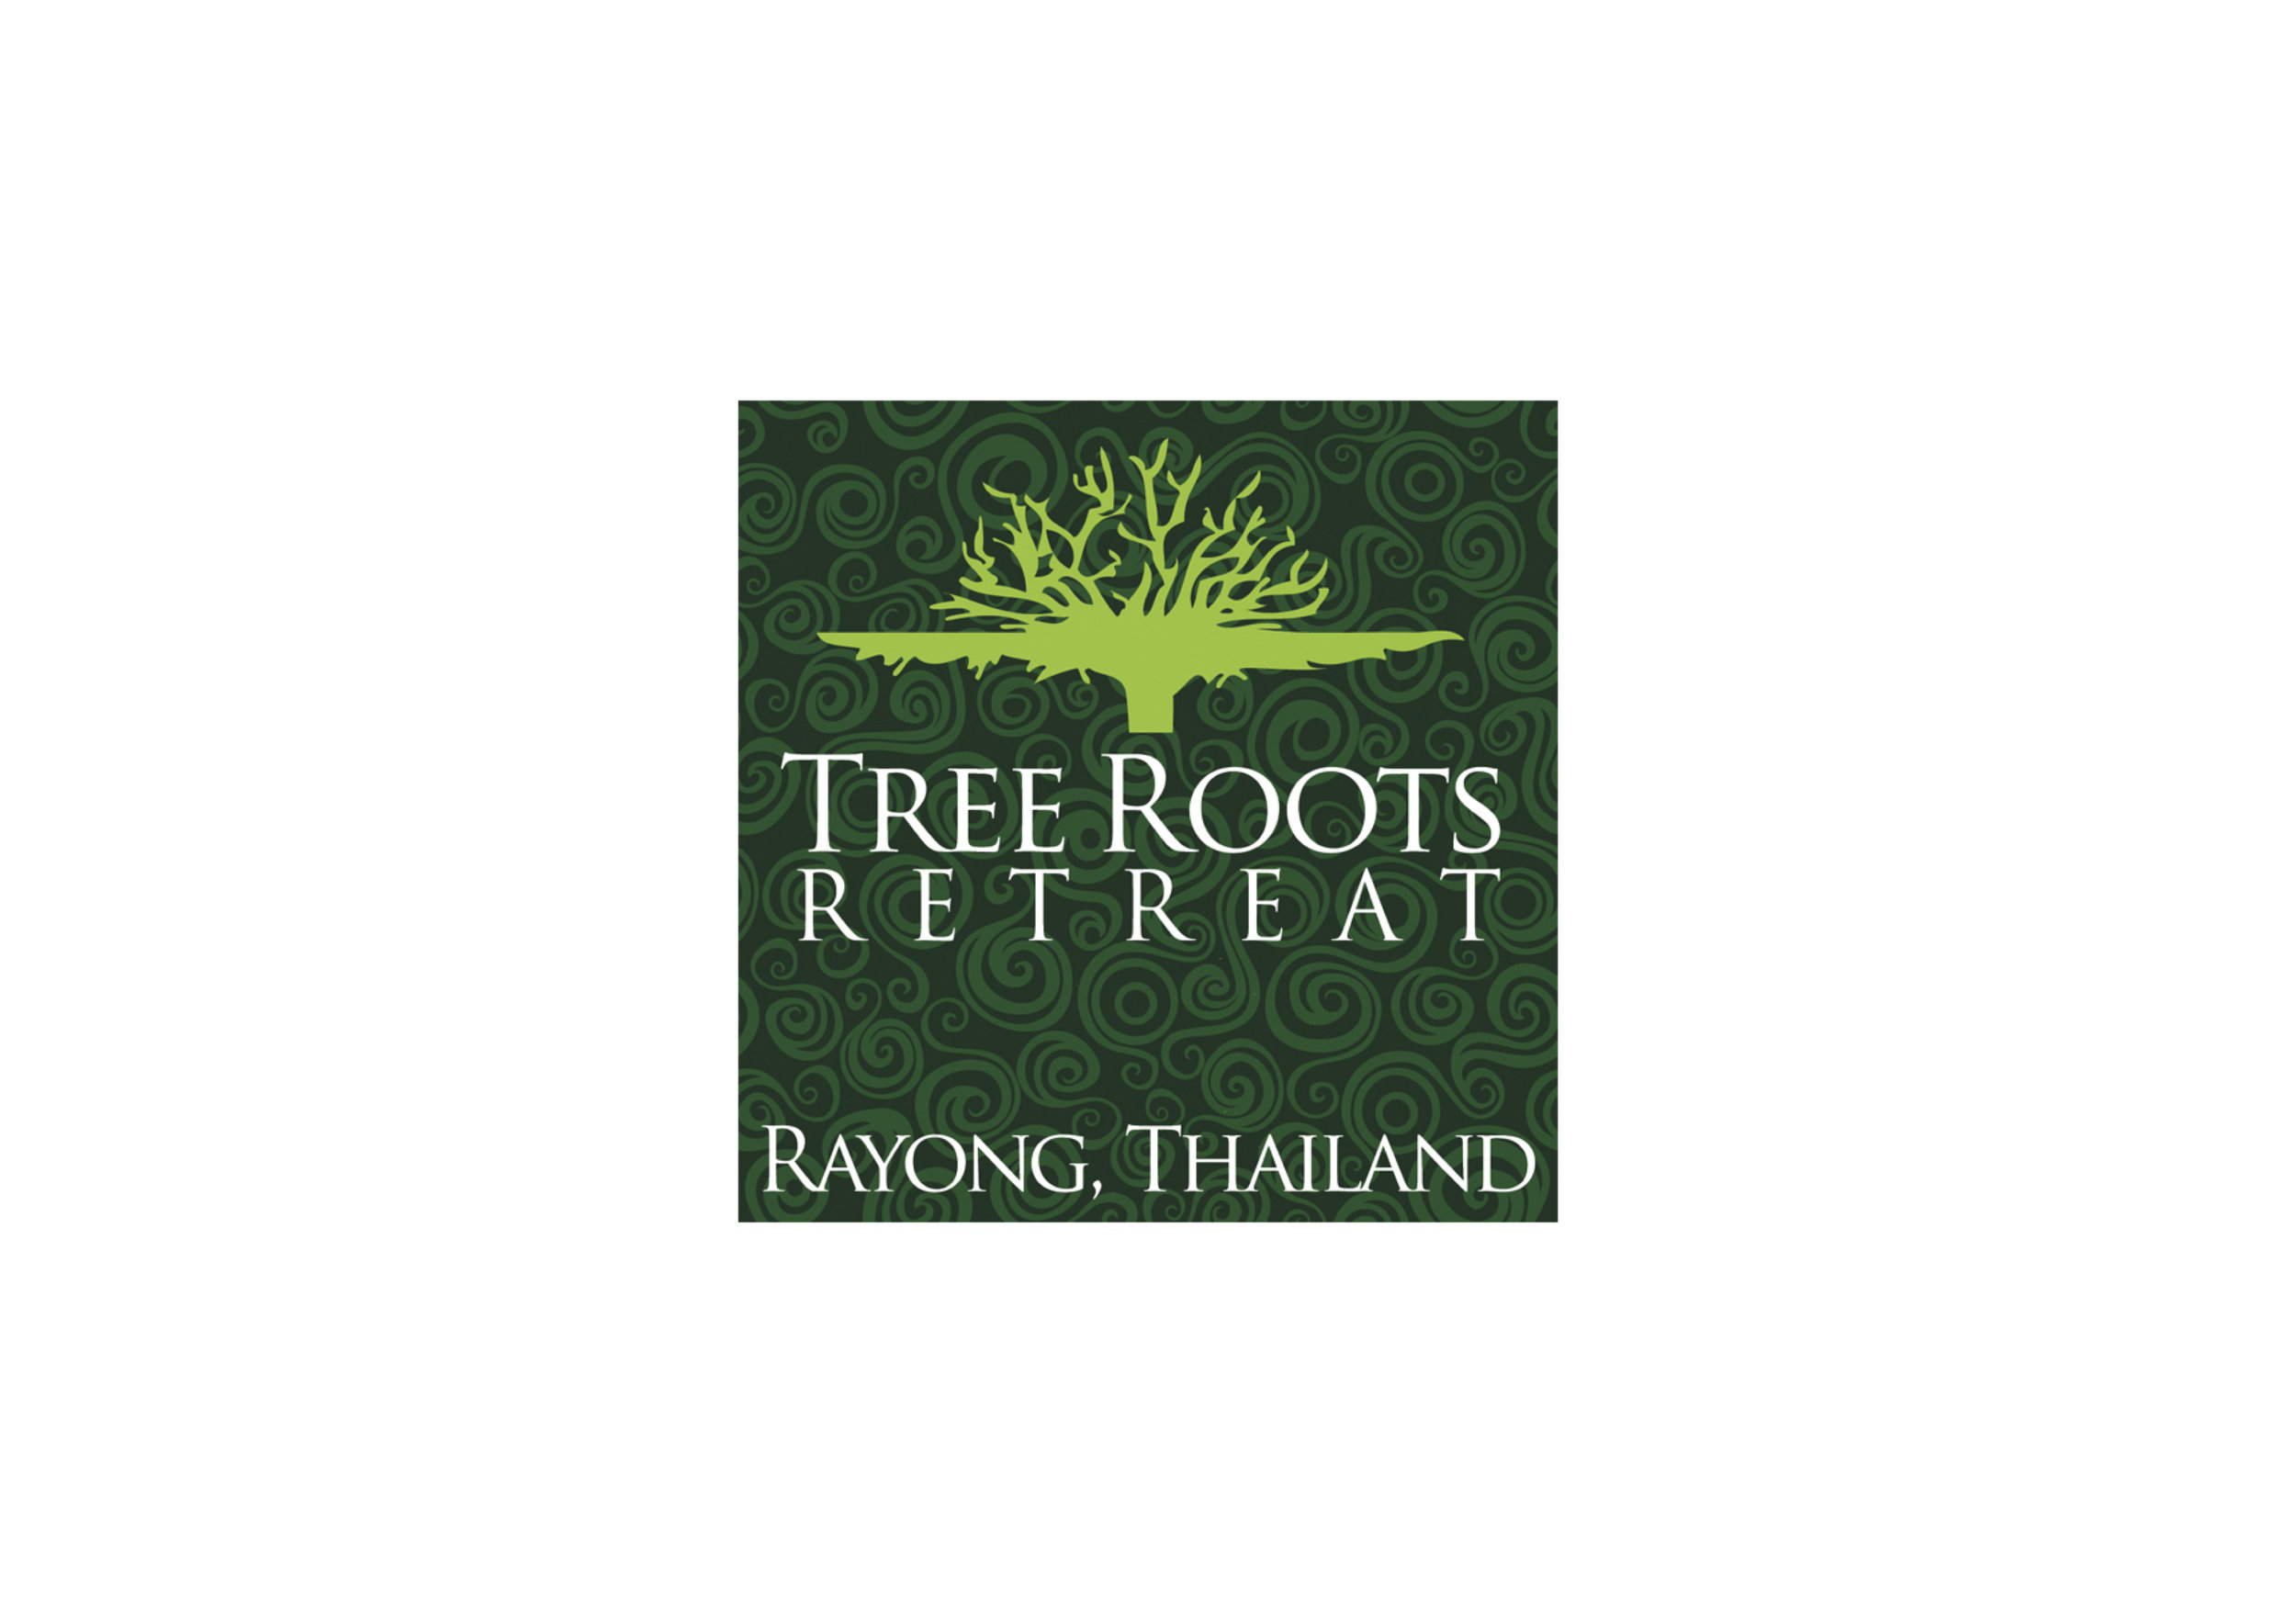 IN ASSOCIATION WITH  TREE ROOTS RETREAT